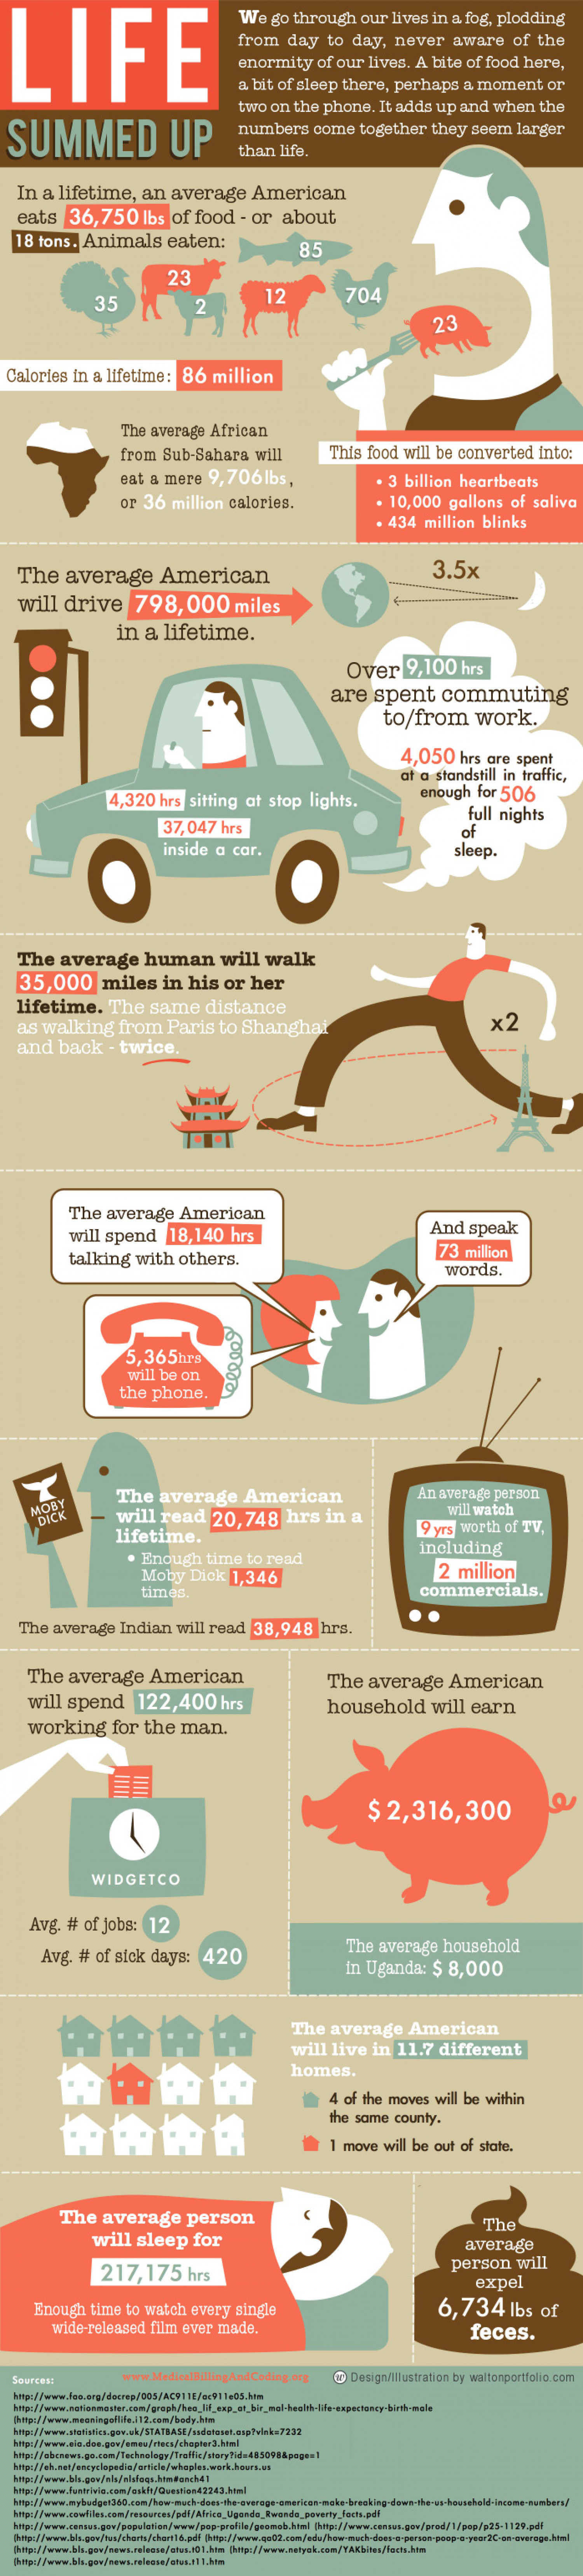 Life Summed Up  Infographic